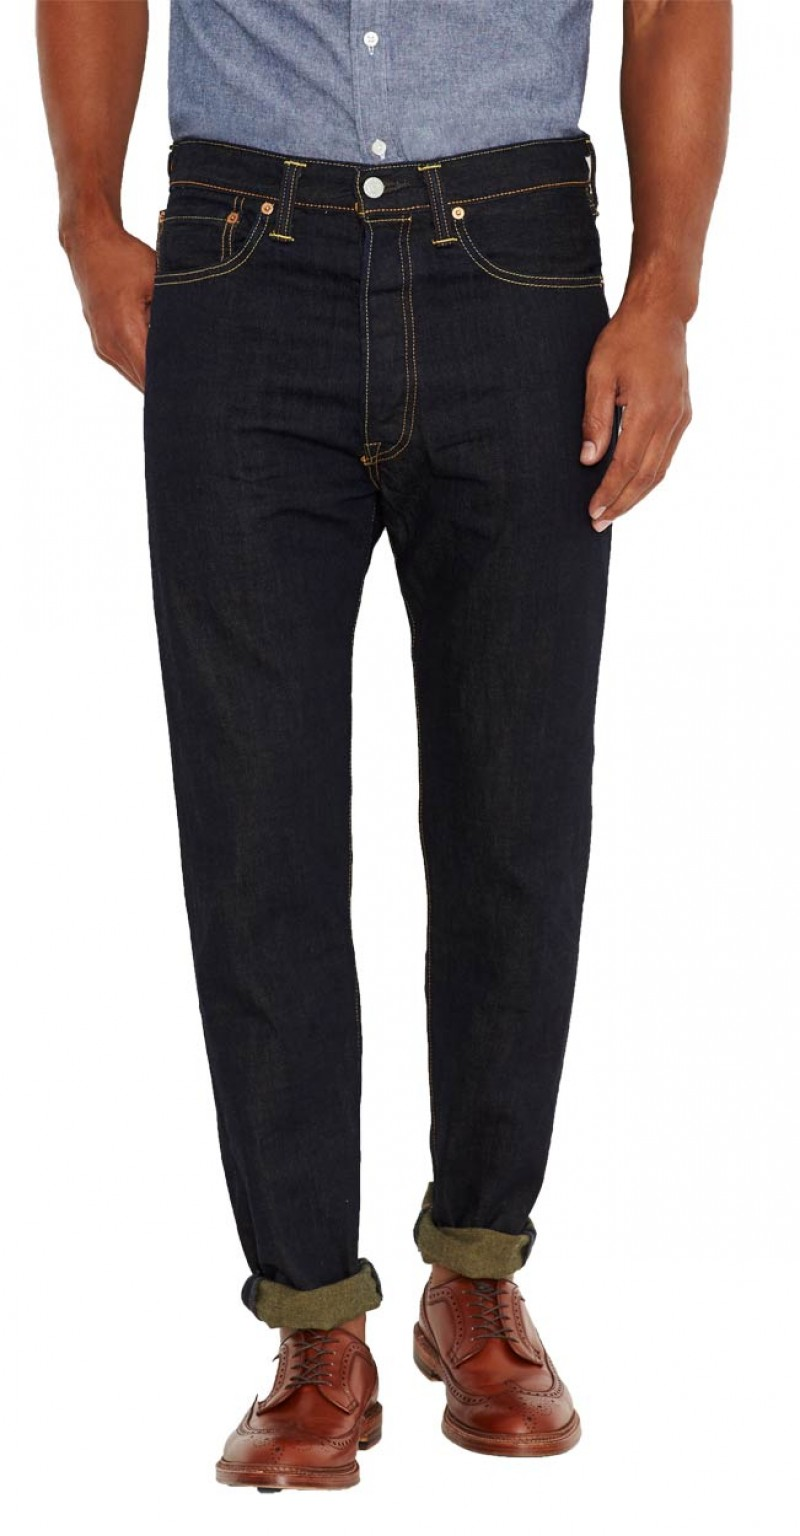 Levis 501 CT Jeans - Tapered Fit - Bristol